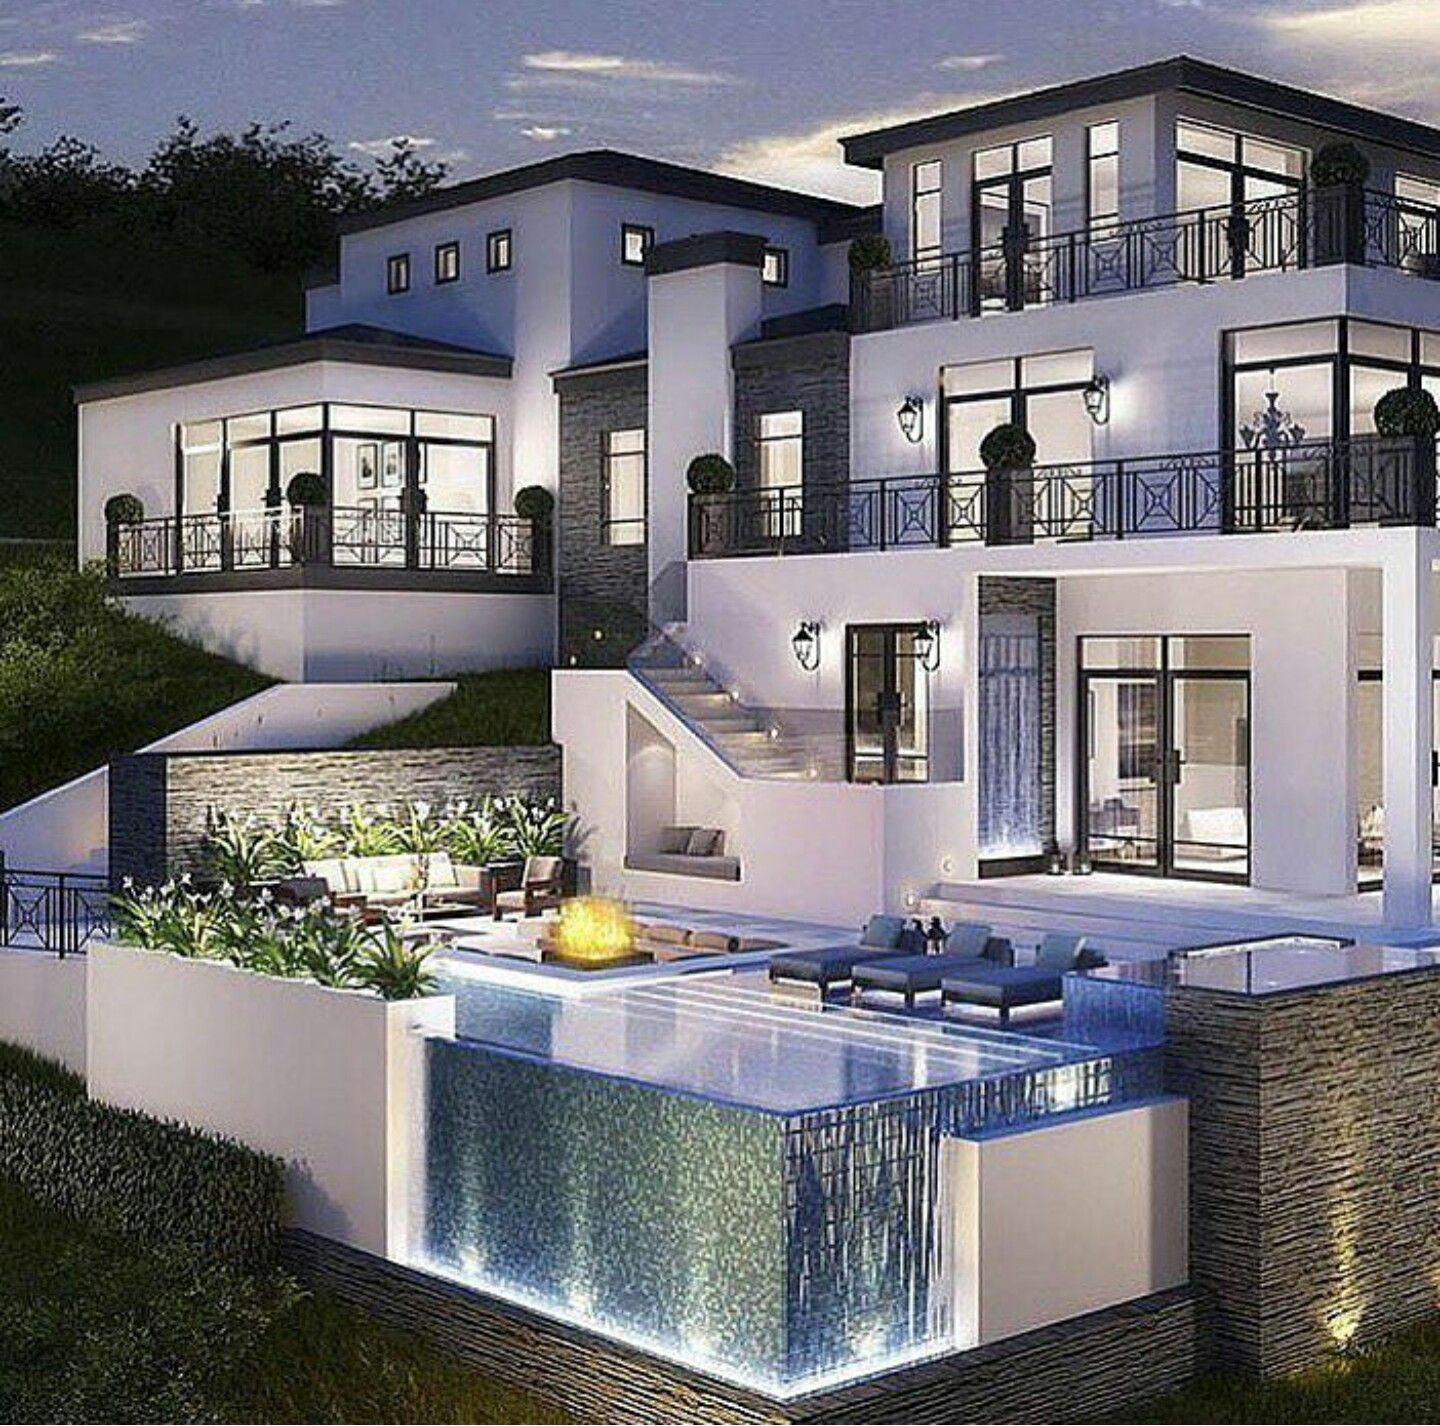 Amazing los angeles hollywood hills mansion with infinity for Amazing home design architecture